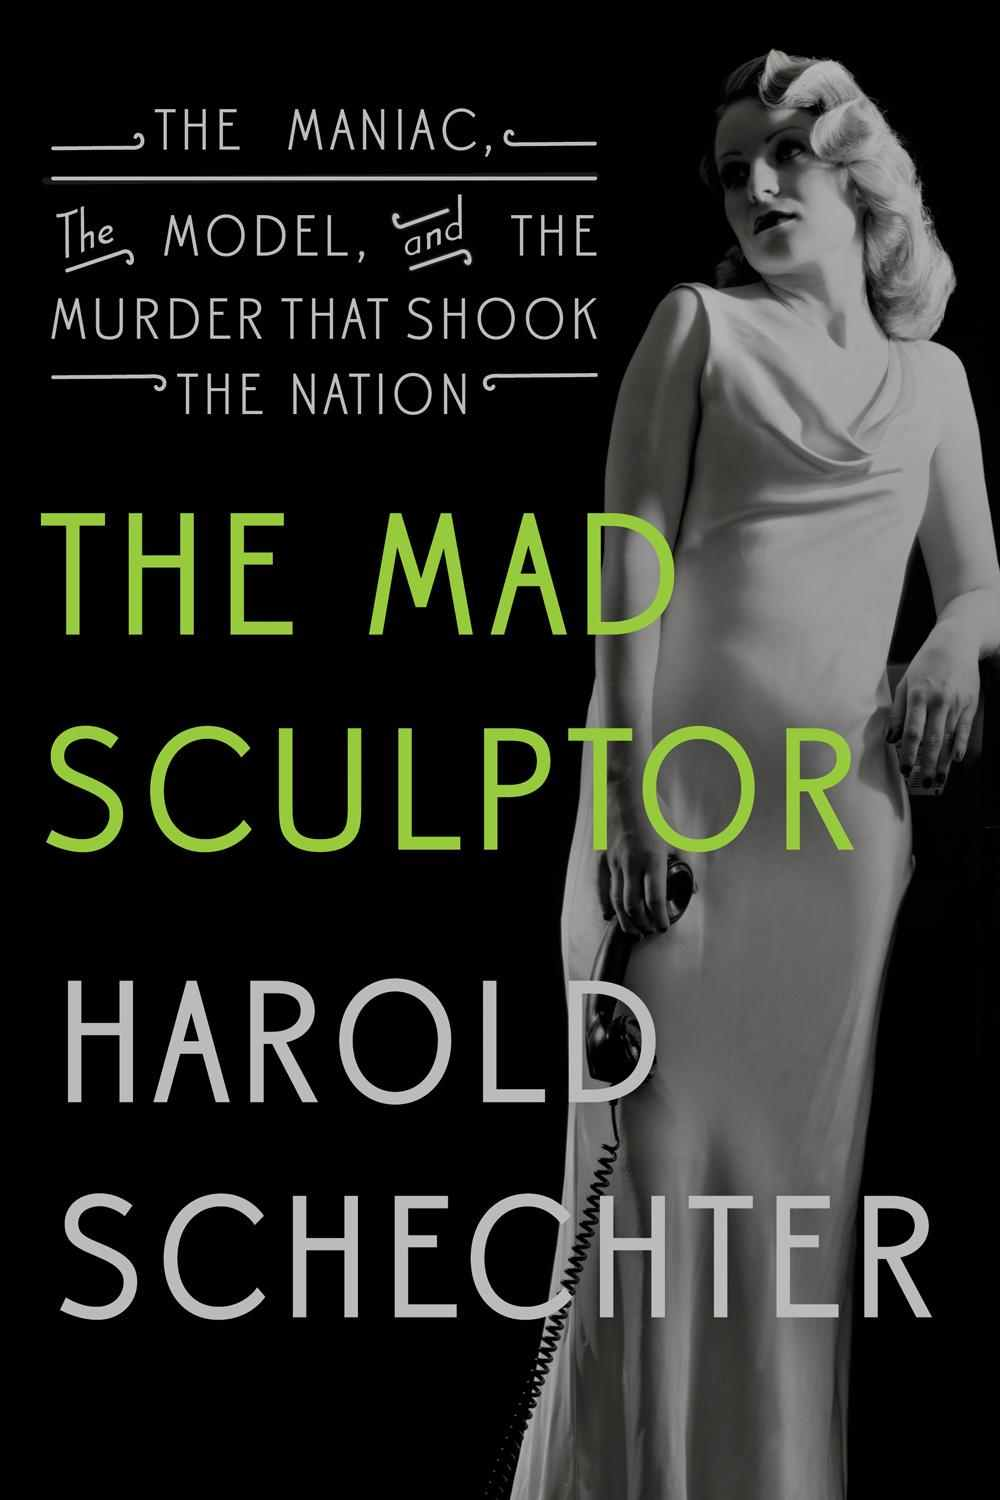 The Mad Sculptor: The Maniac, the Model, and the Murder That Shook the Nation